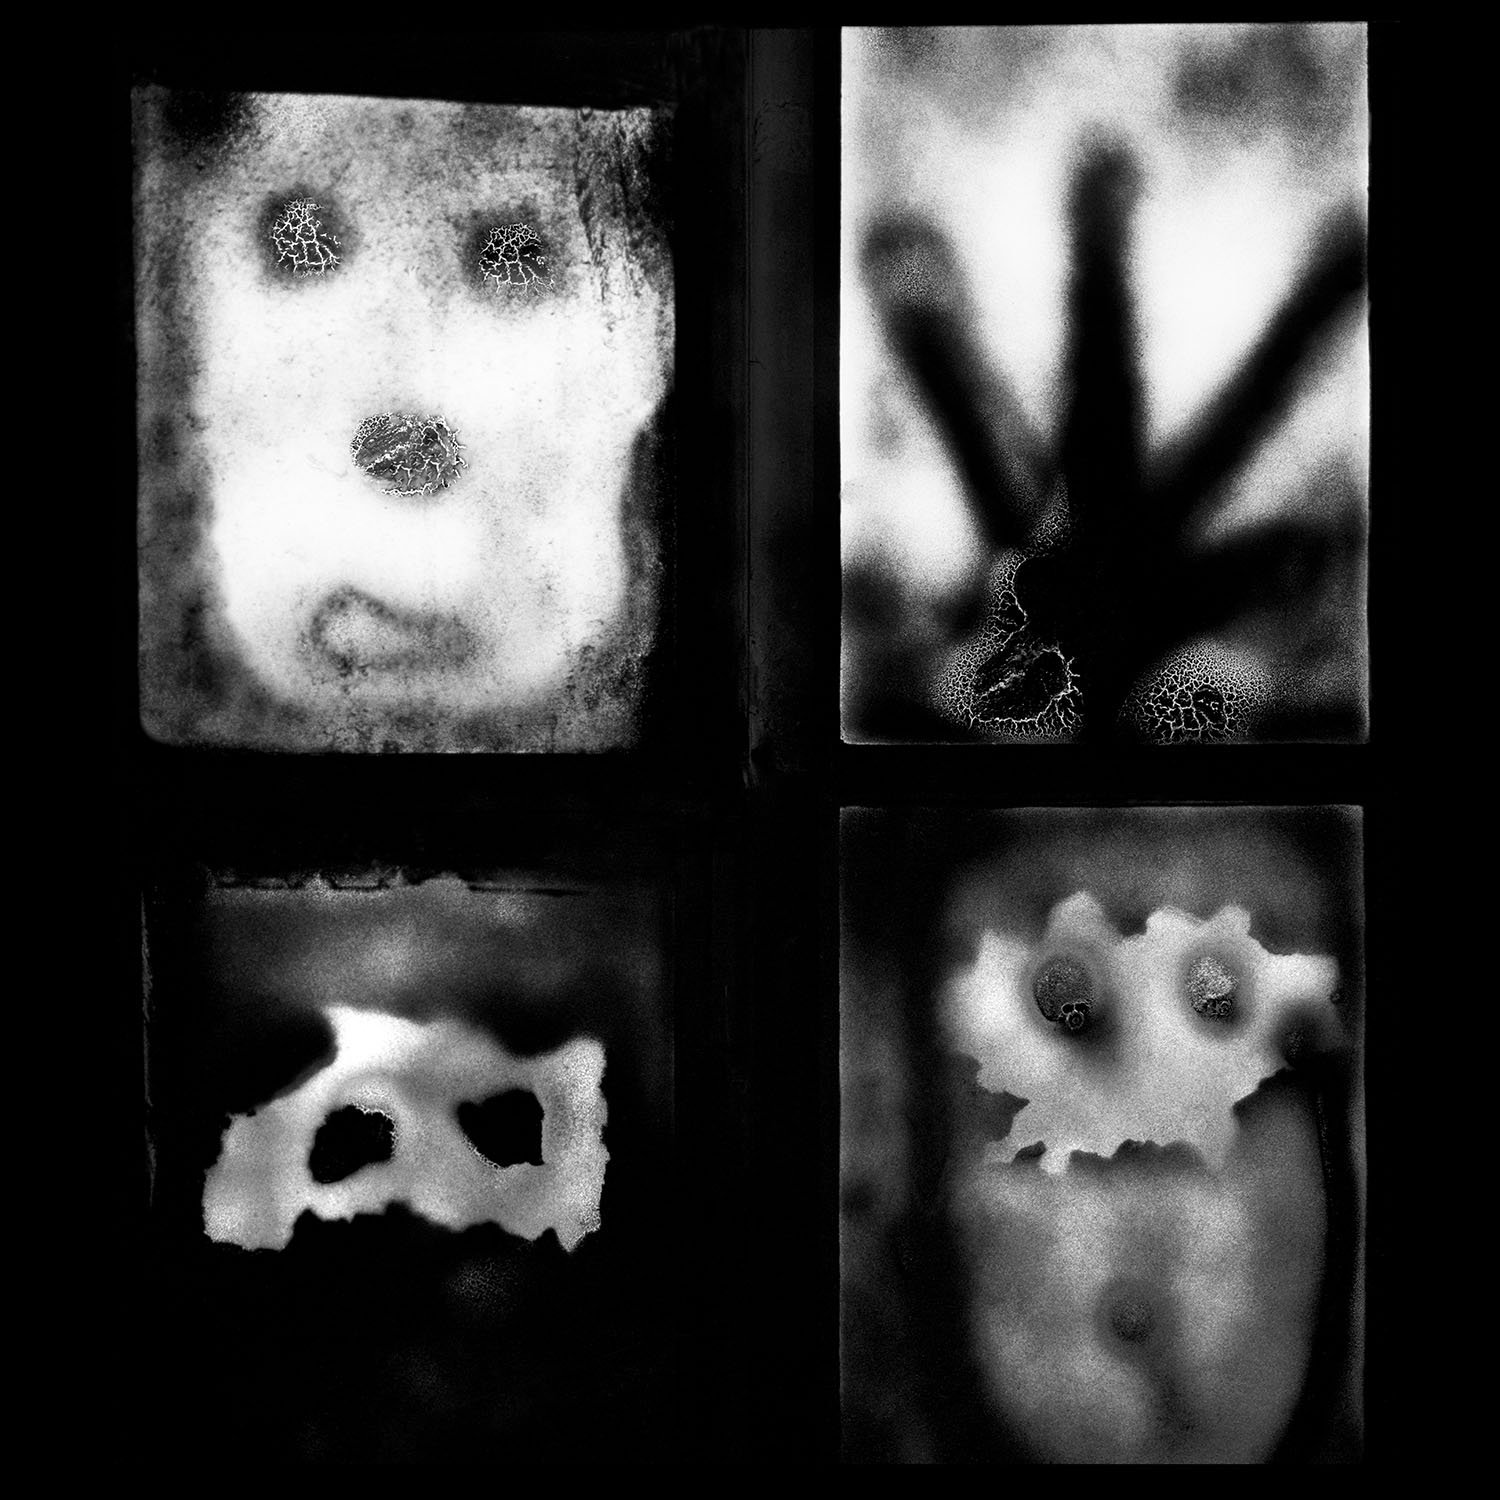 Manifestation, 2007.  From the upcoming book ''The Theatre of Apparitions''  © Roger Ballen